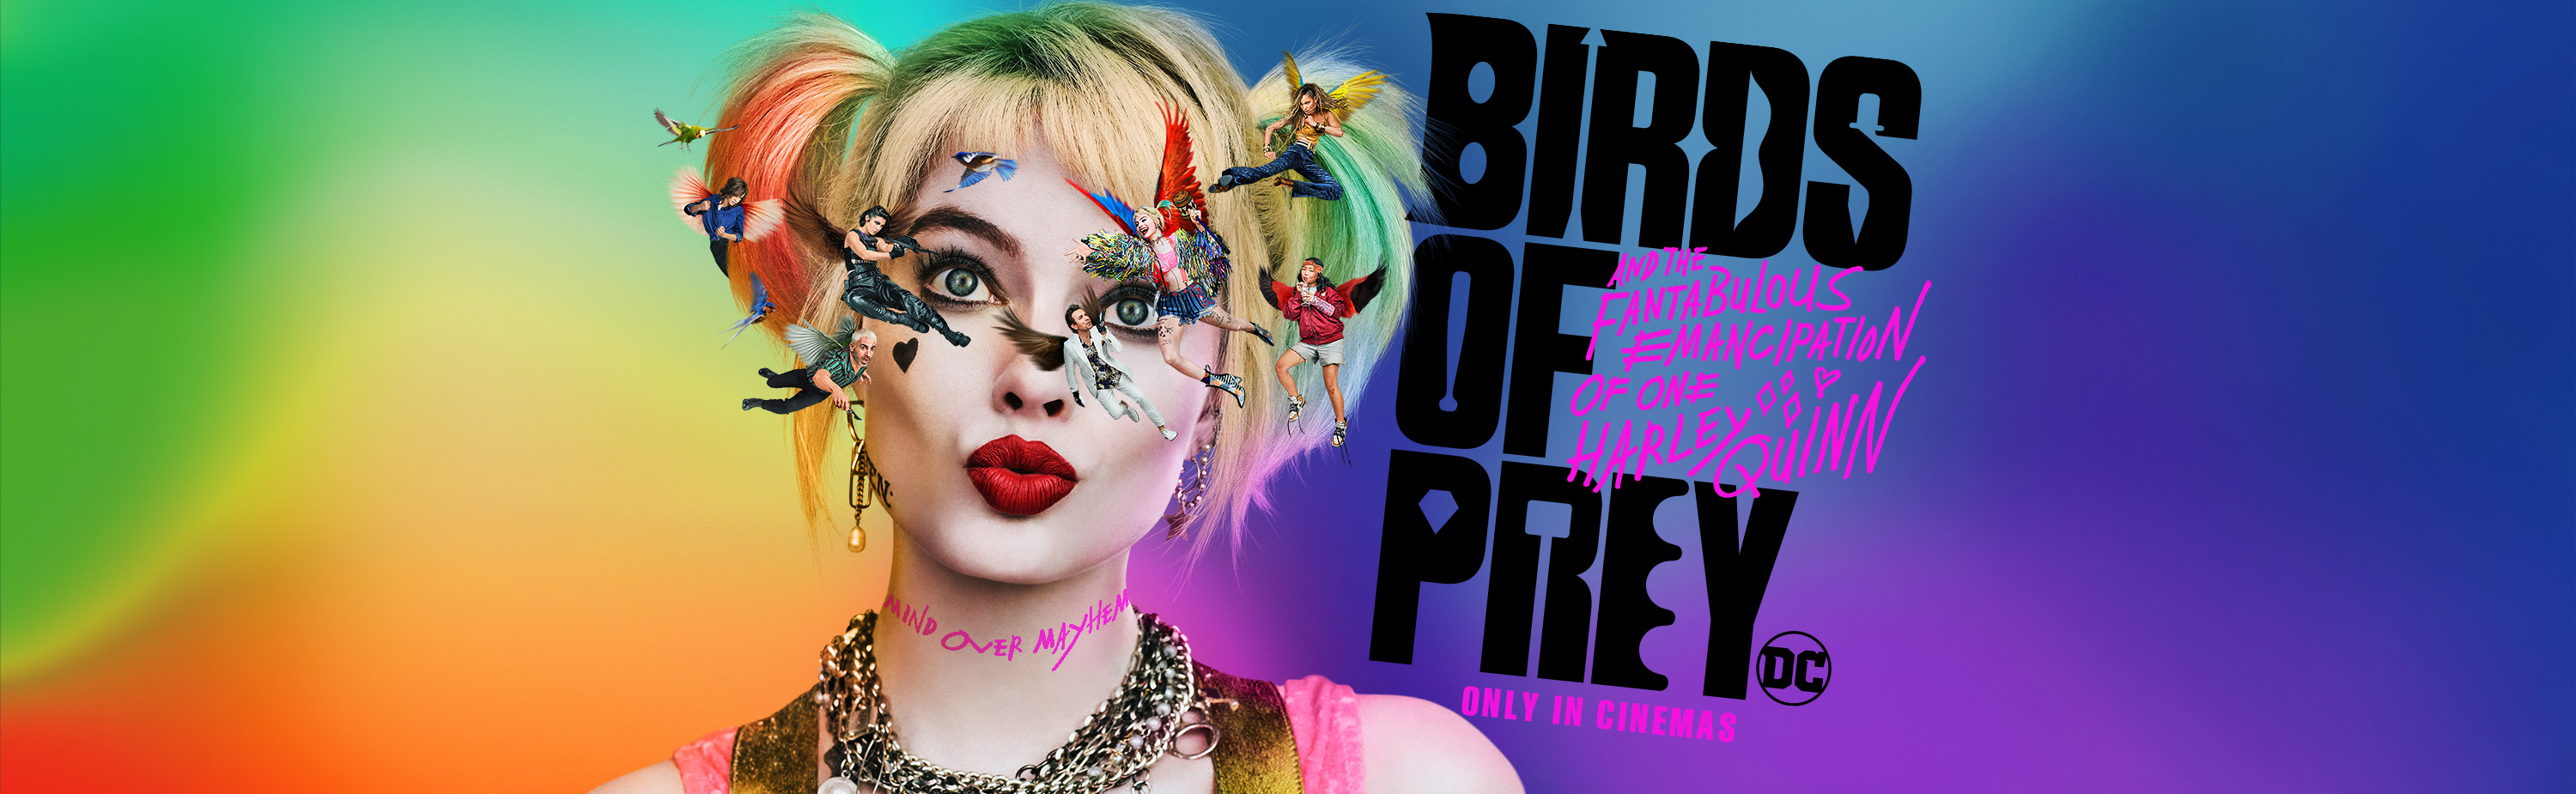 'Birds of Prey (and the Fantabulous Emancipation of One Harley Quinn)' - landscape artwork